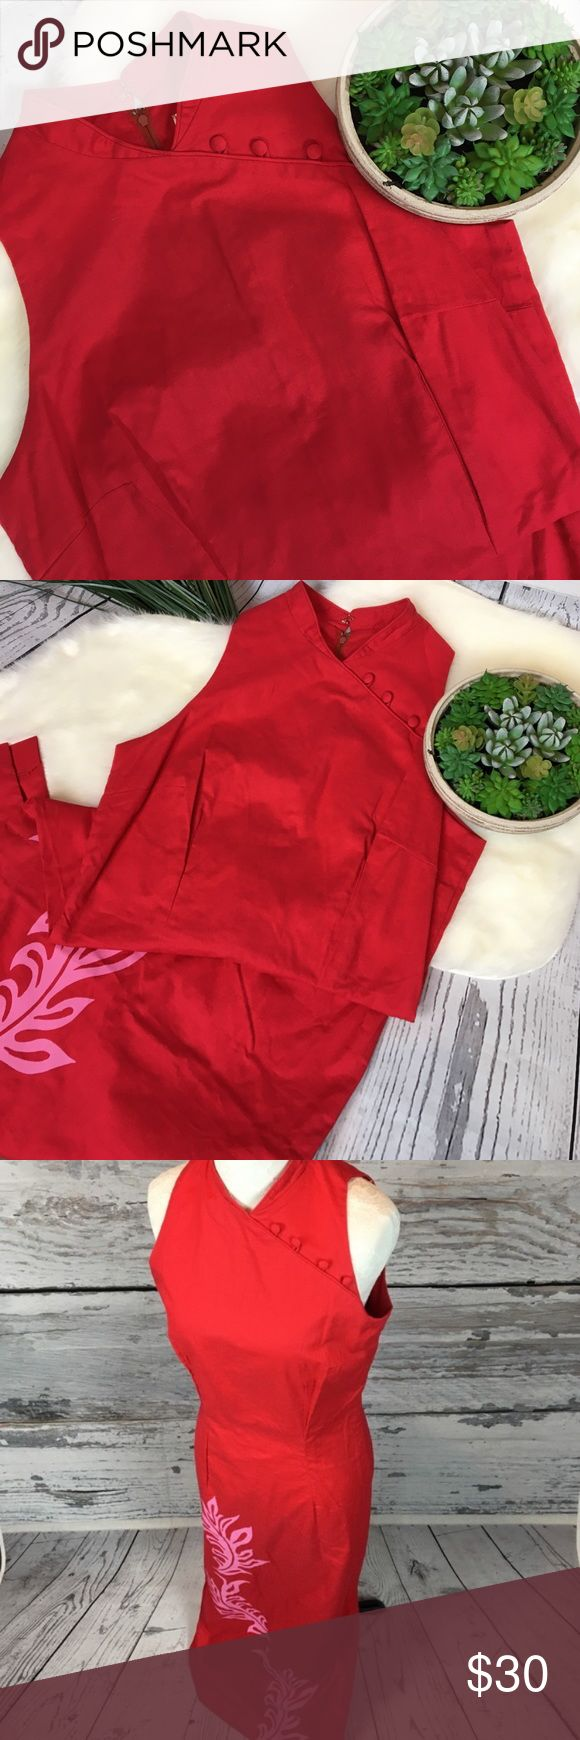 "Vintage STUNNING Hawaiian Red USA Mamo Dress Sz 6 STUNNING!! Mamo Howell Made in Hawaii red sleeveless dress. Floral Hawaiian pink pattern at bottom. Size split. Size is a 6 but, fits my size 2/4 mannequin perfectly. Fully zip back. Long fitted style, please review measurements carefully. Vintage clothing fits differently then today's clothing made in China.  Measurements (flat): Armpit to armpit: 17.5"" Waist: 14.5"" Hips: 18"" Armpit to bottom: 46"" Shoulder to bottom: 55"" Across bottom: 18""…"